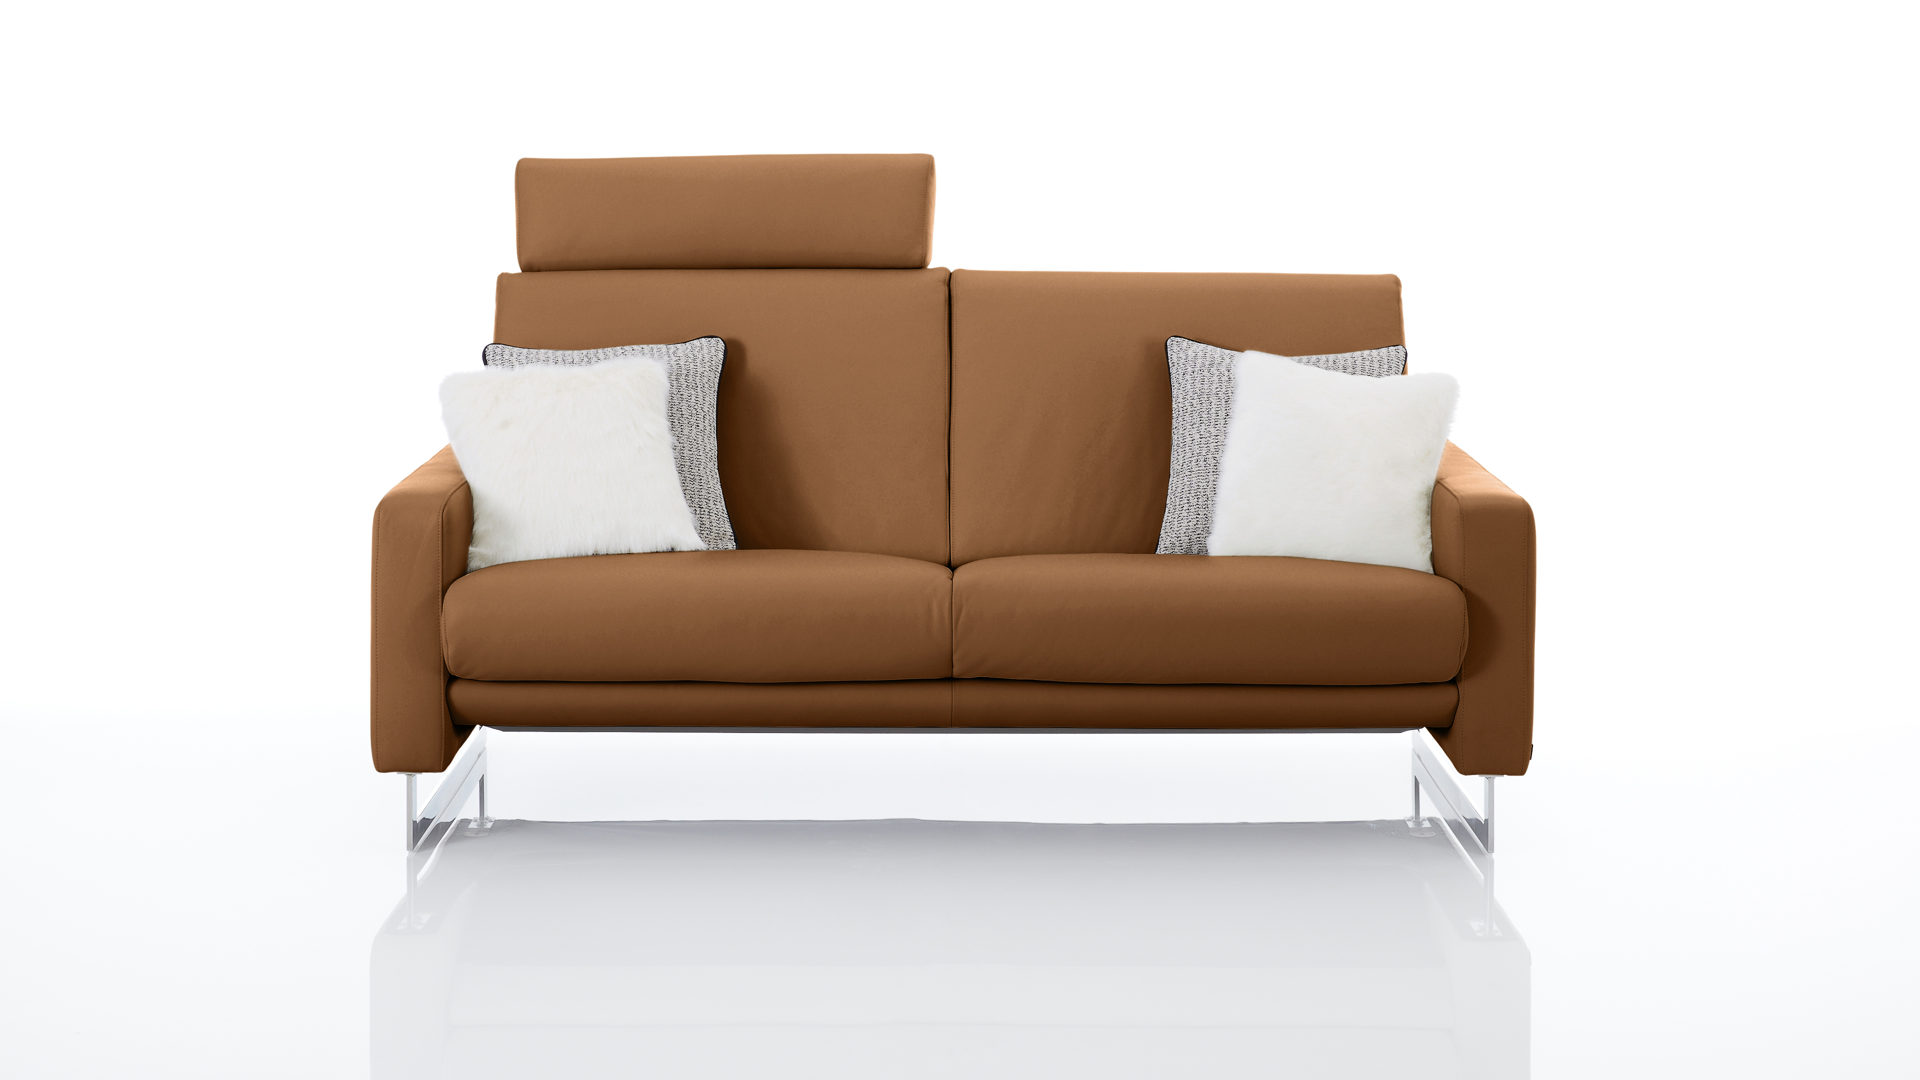 Polsterhocker Cognac Möbelhaus Franz Ohg Interliving Interliving Interliving Sofa